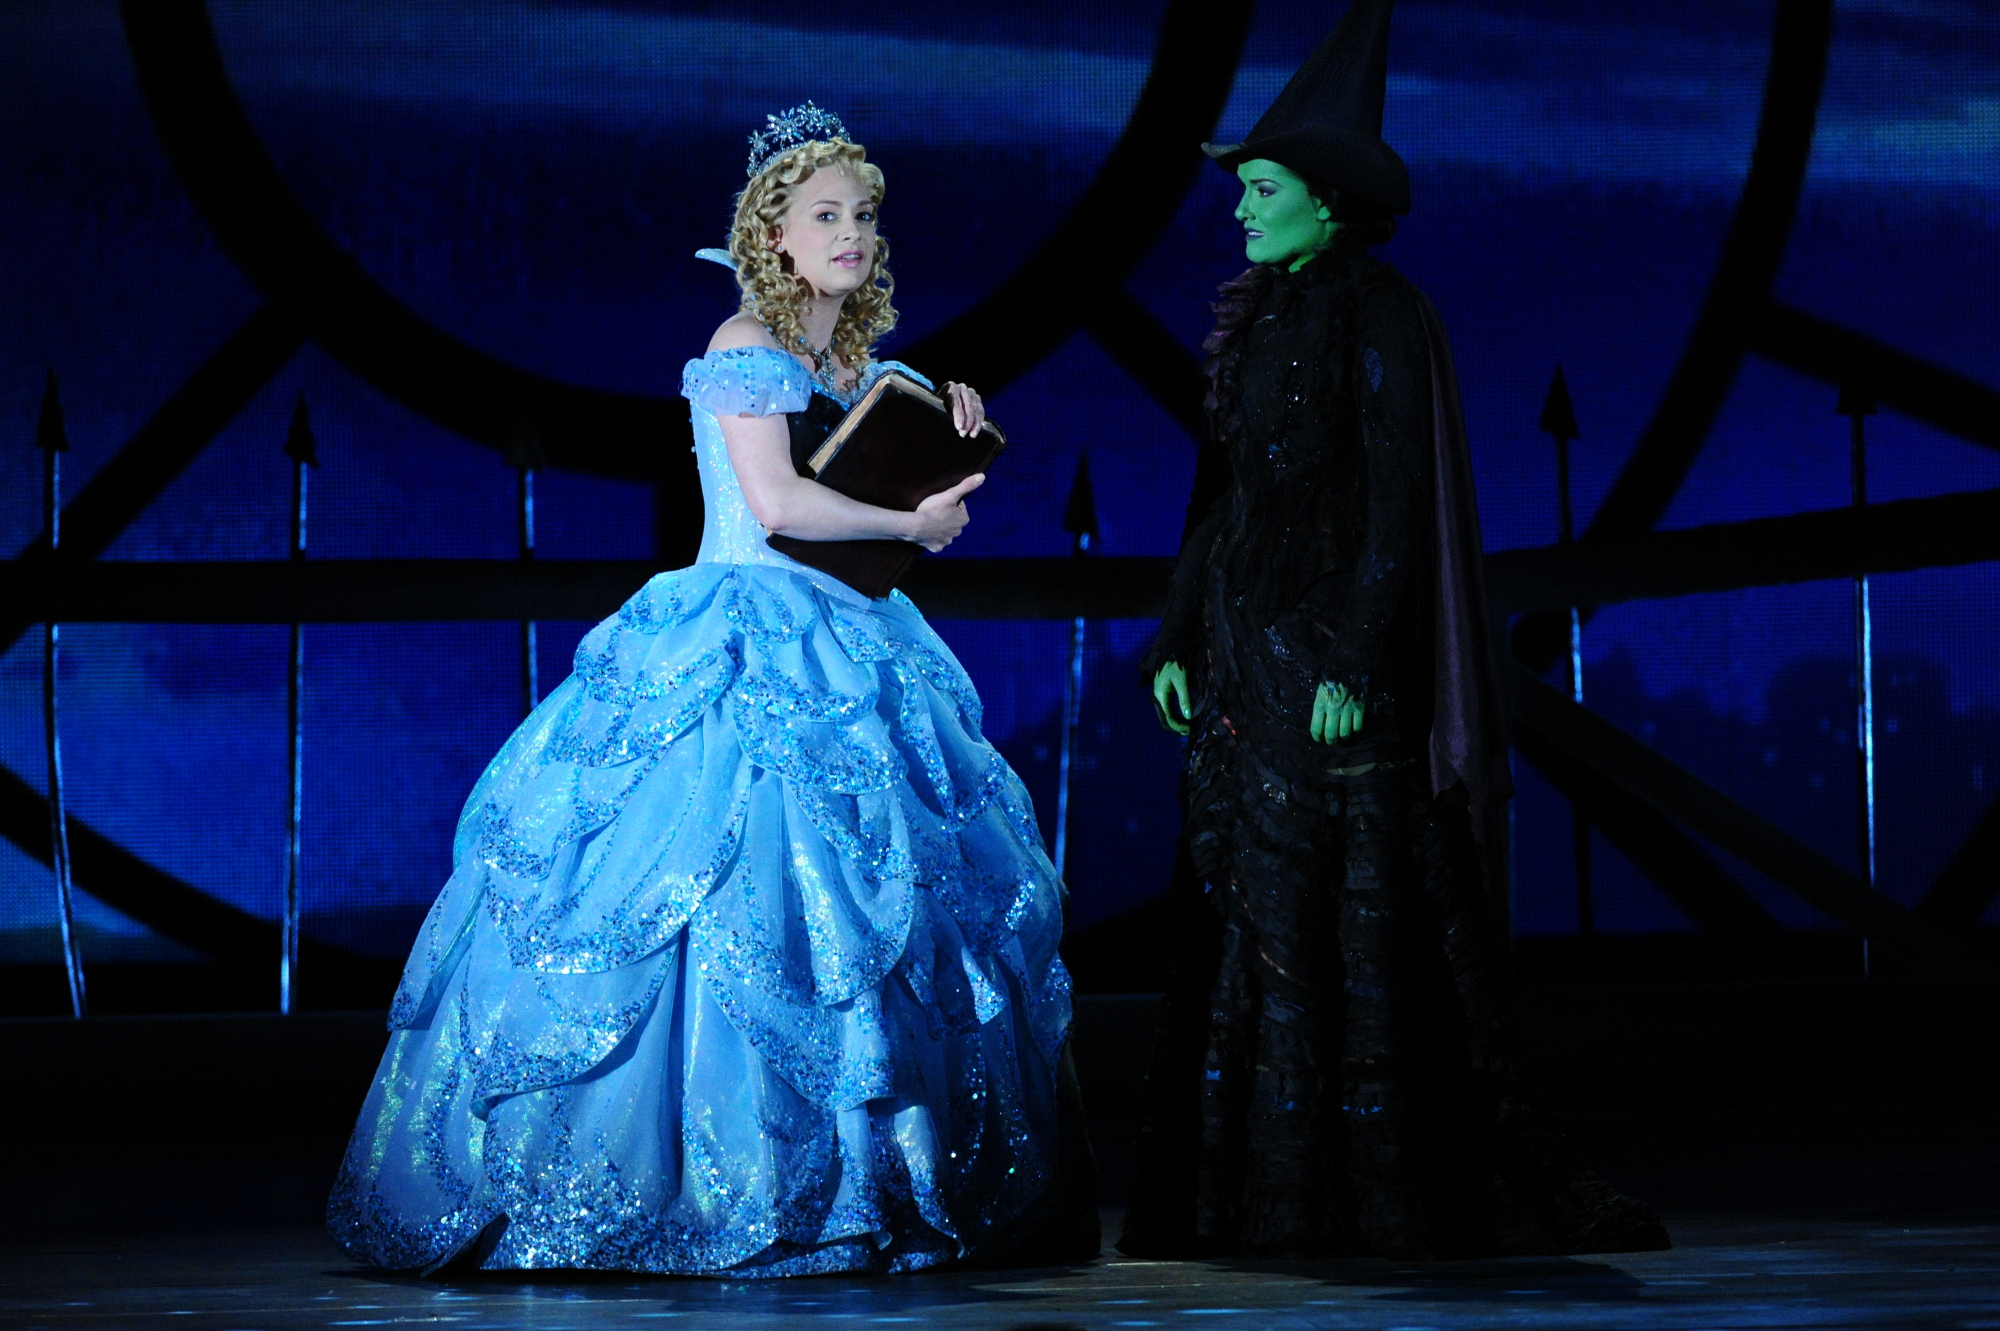 The cast of Wicked - 2014 Tony Awards